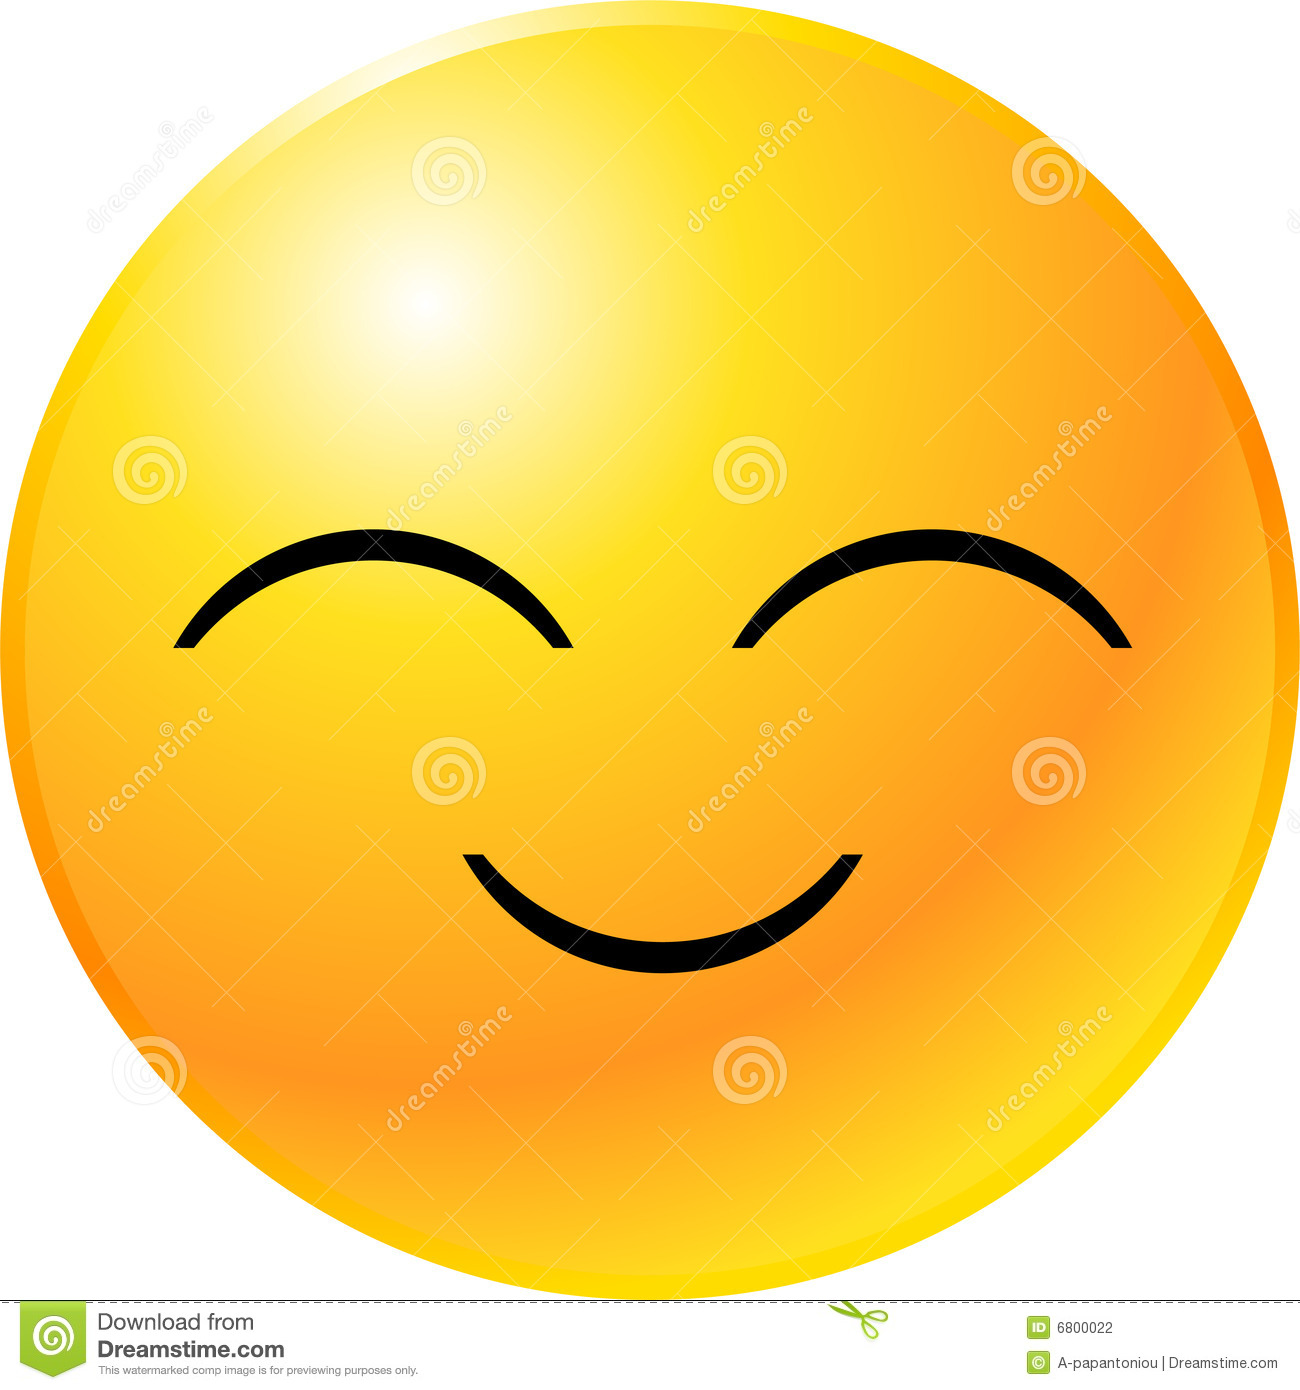 Smiley Face Clip Art Emotions.